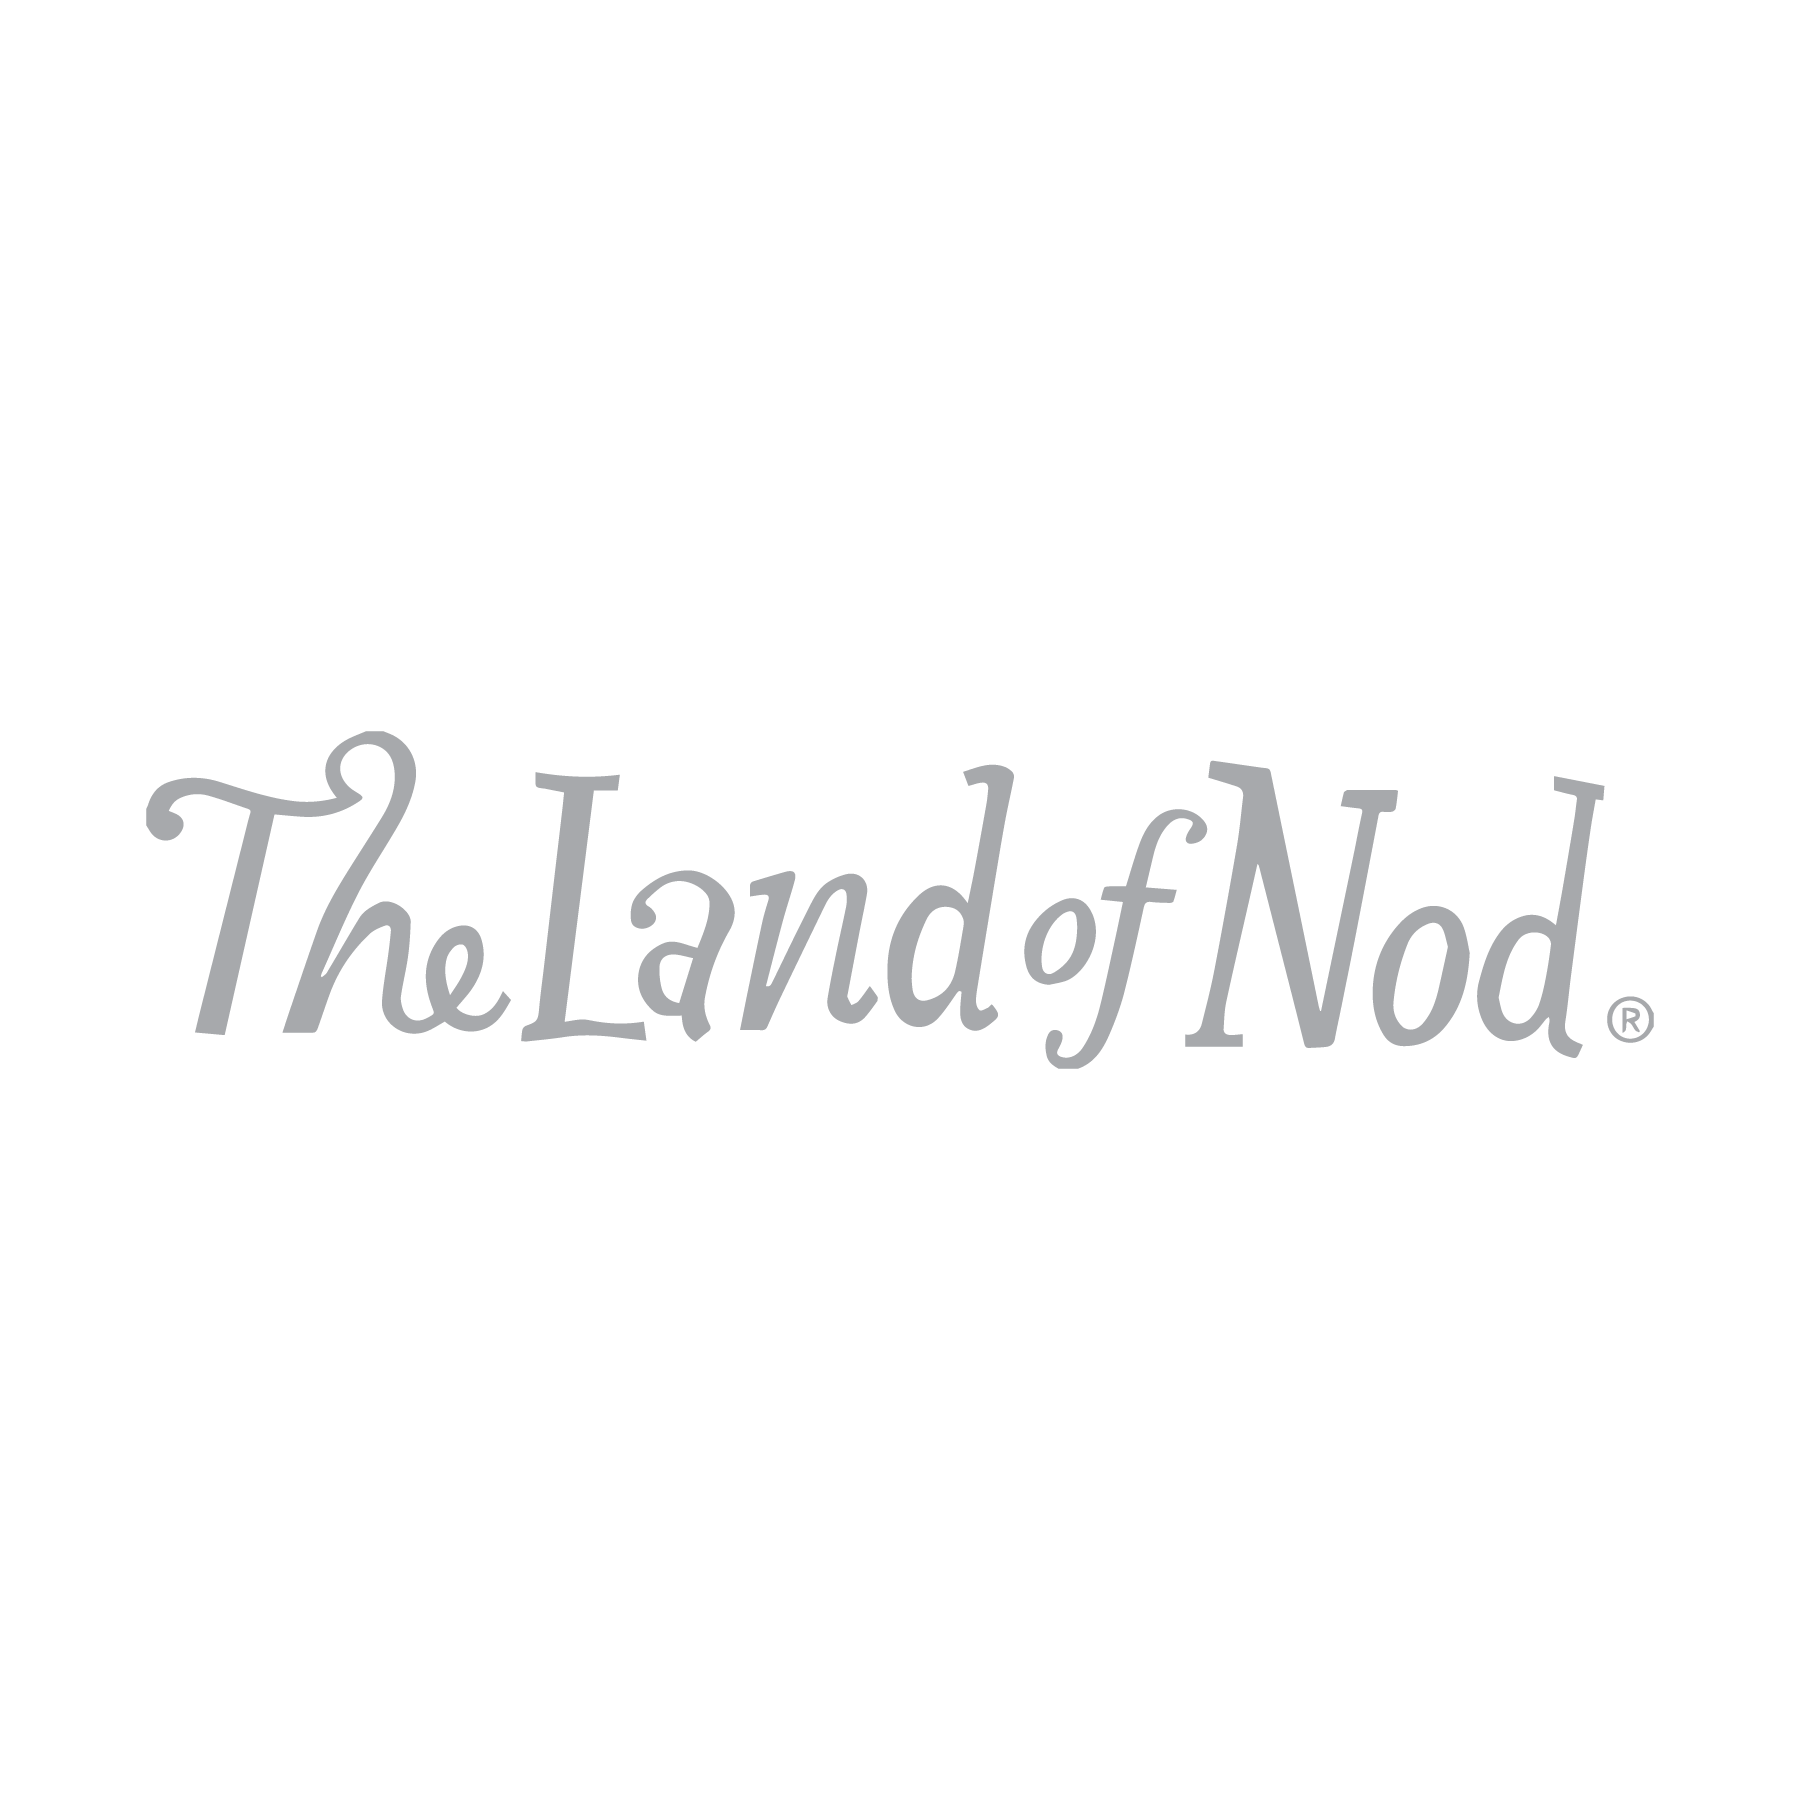 Land of Nod.png